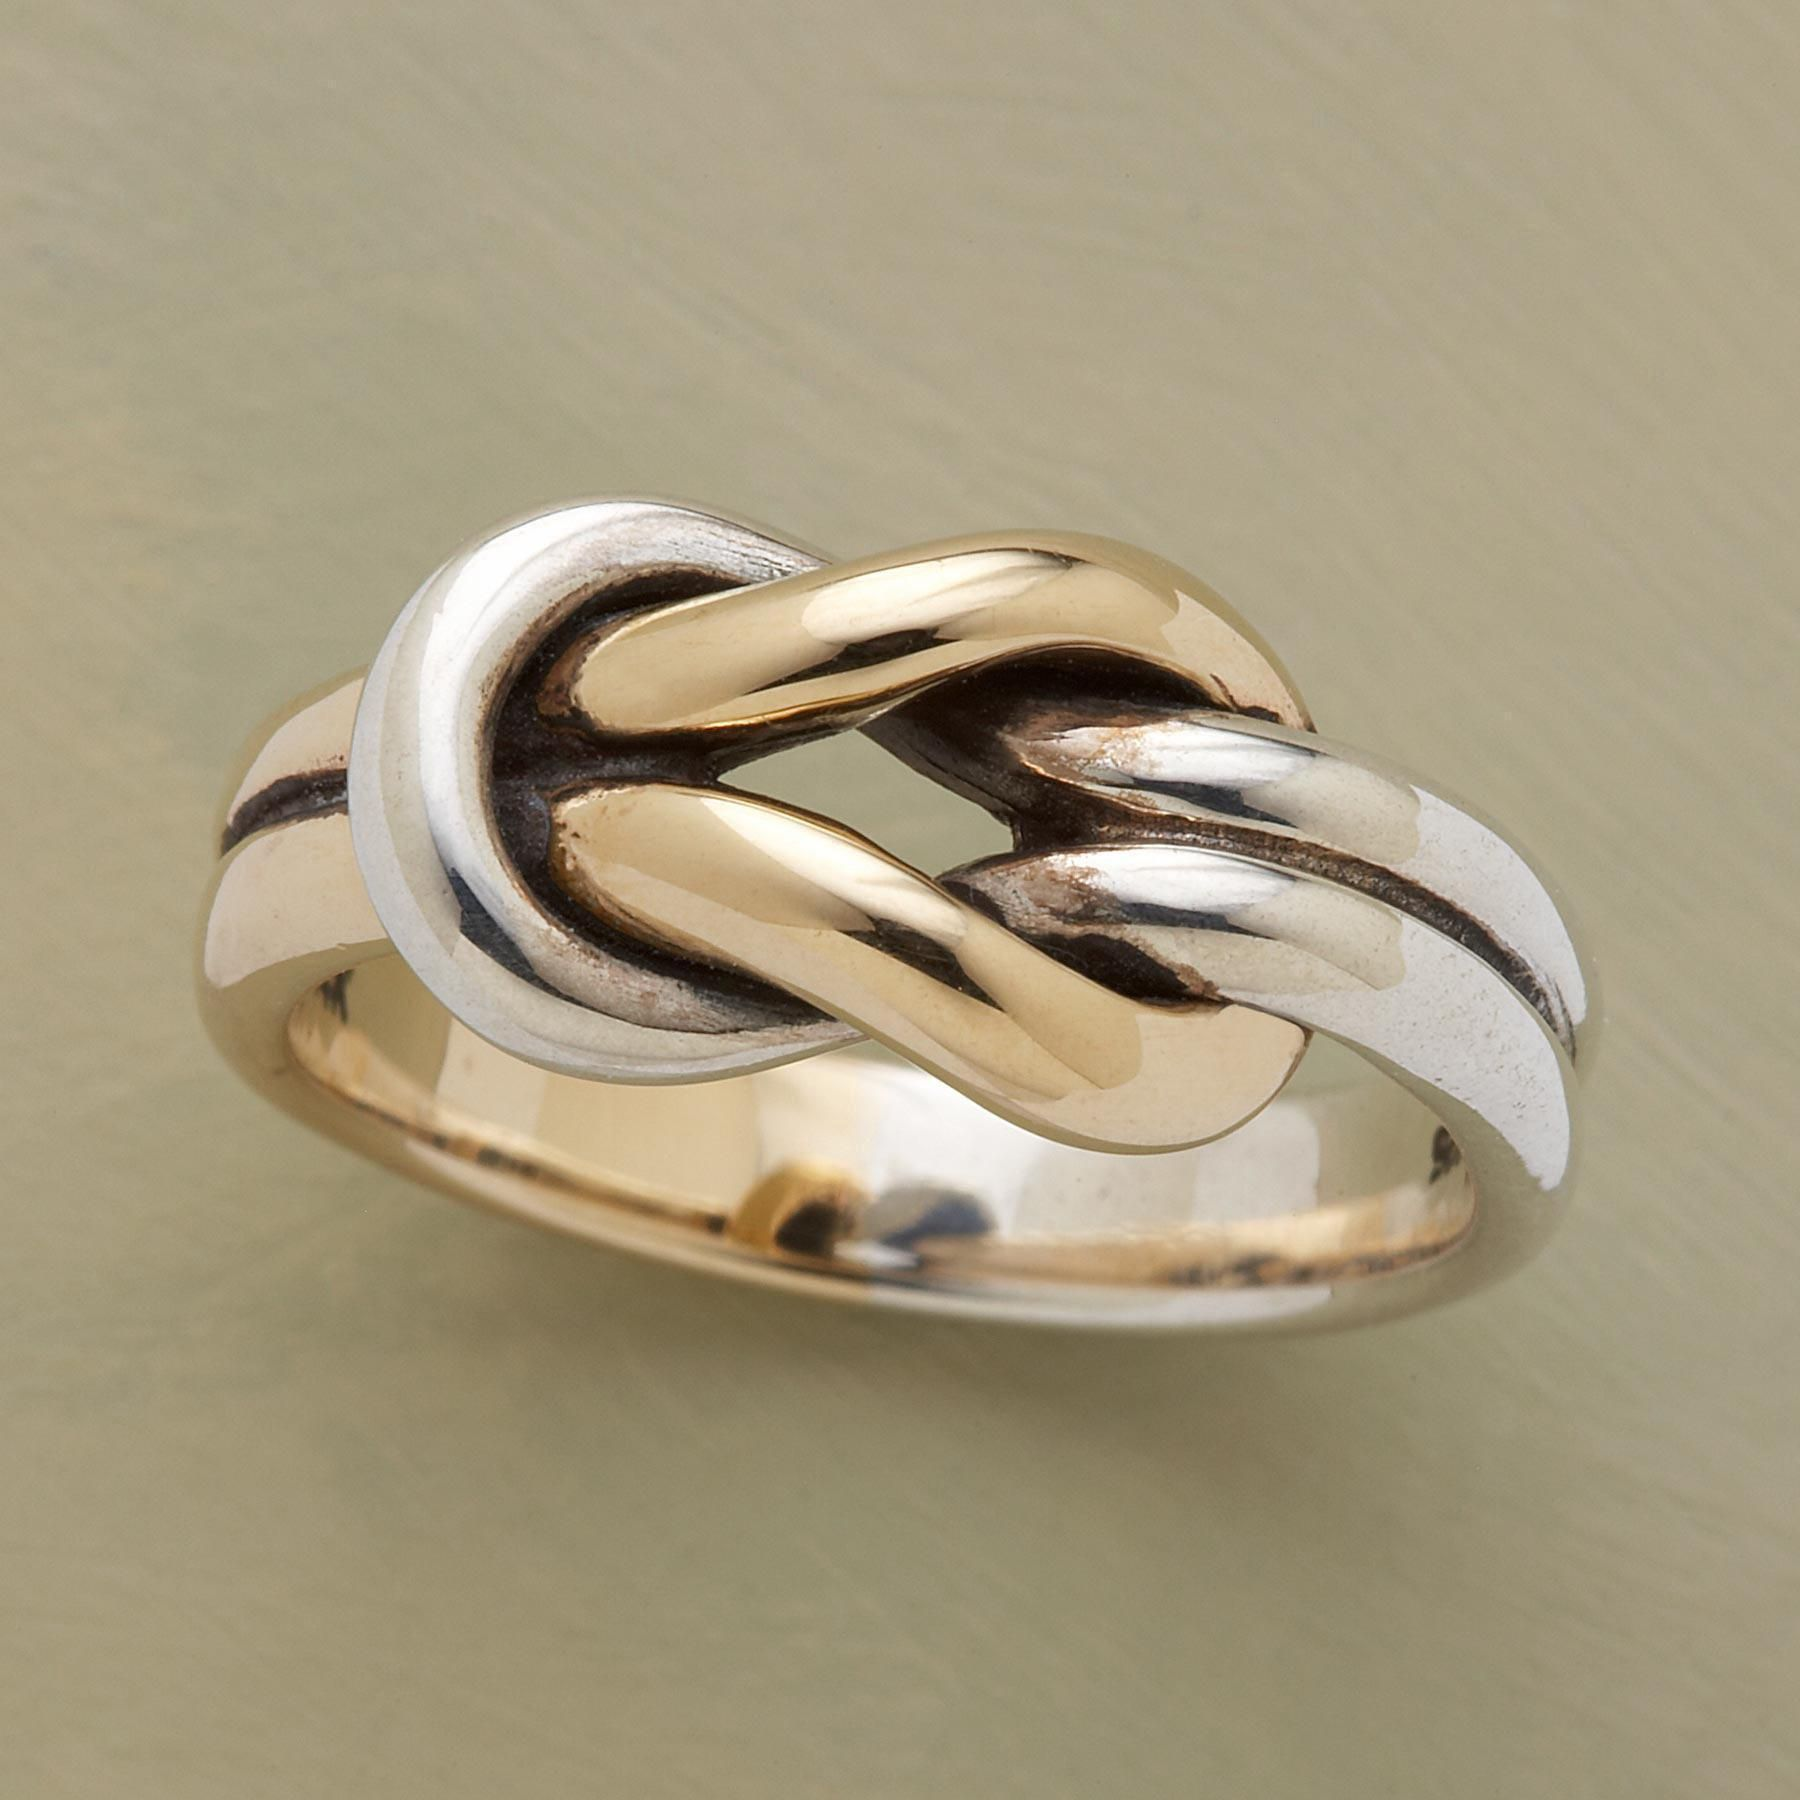 Tie the knot ring in 2020 Knot ring meaning, Rings with